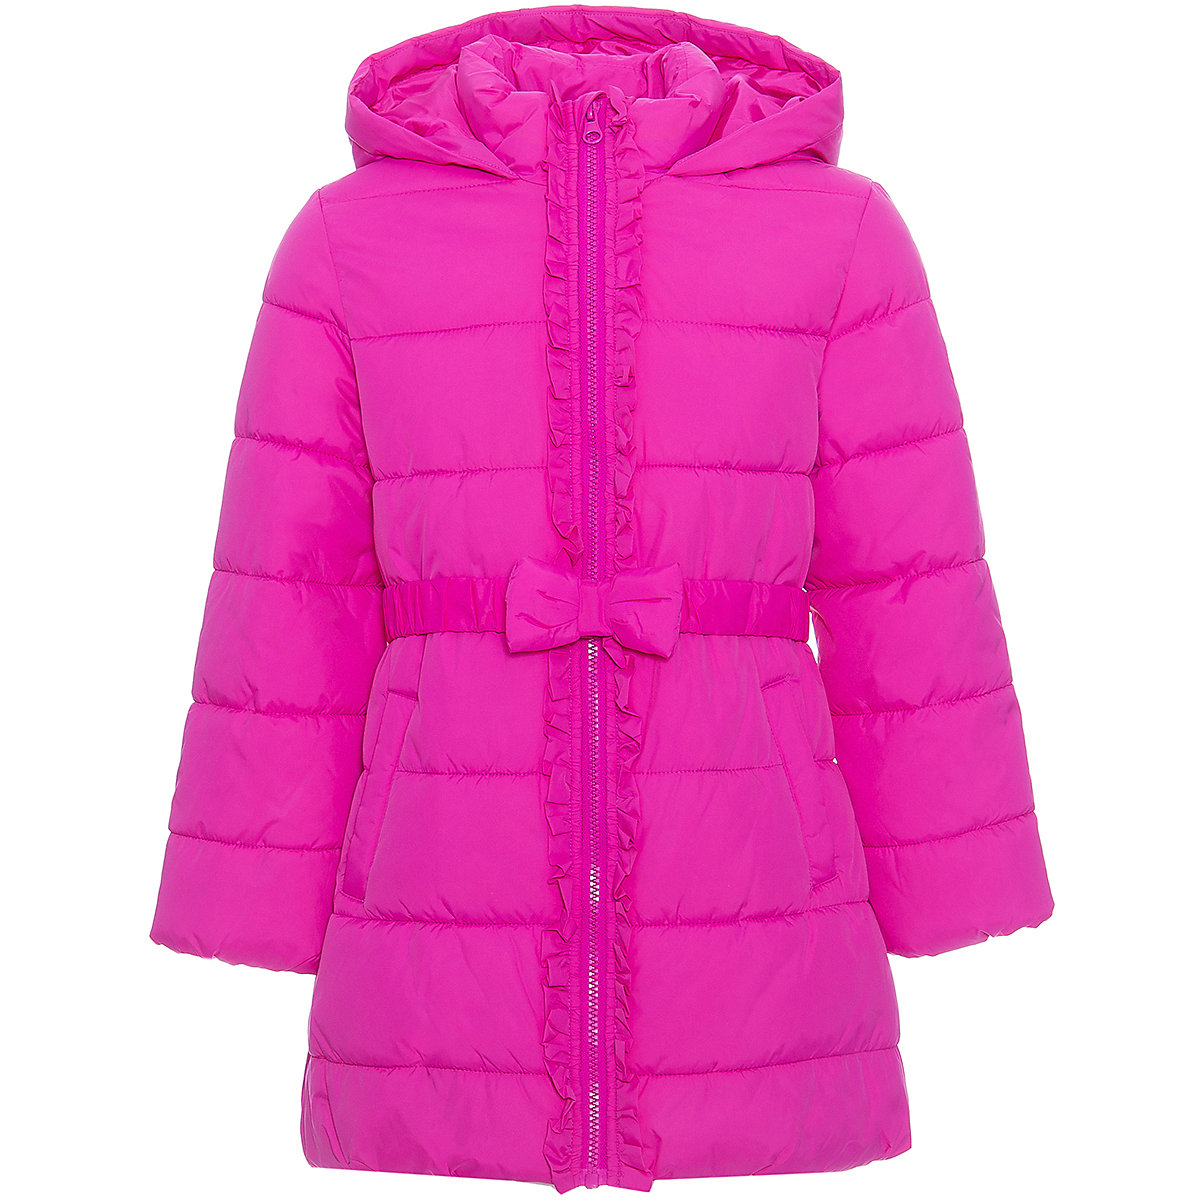 Original Marines Jackets & Coats 9500802 Polyester Girls girl children clothing reima jackets 8665394 for girls polyester winter fur clothes girl